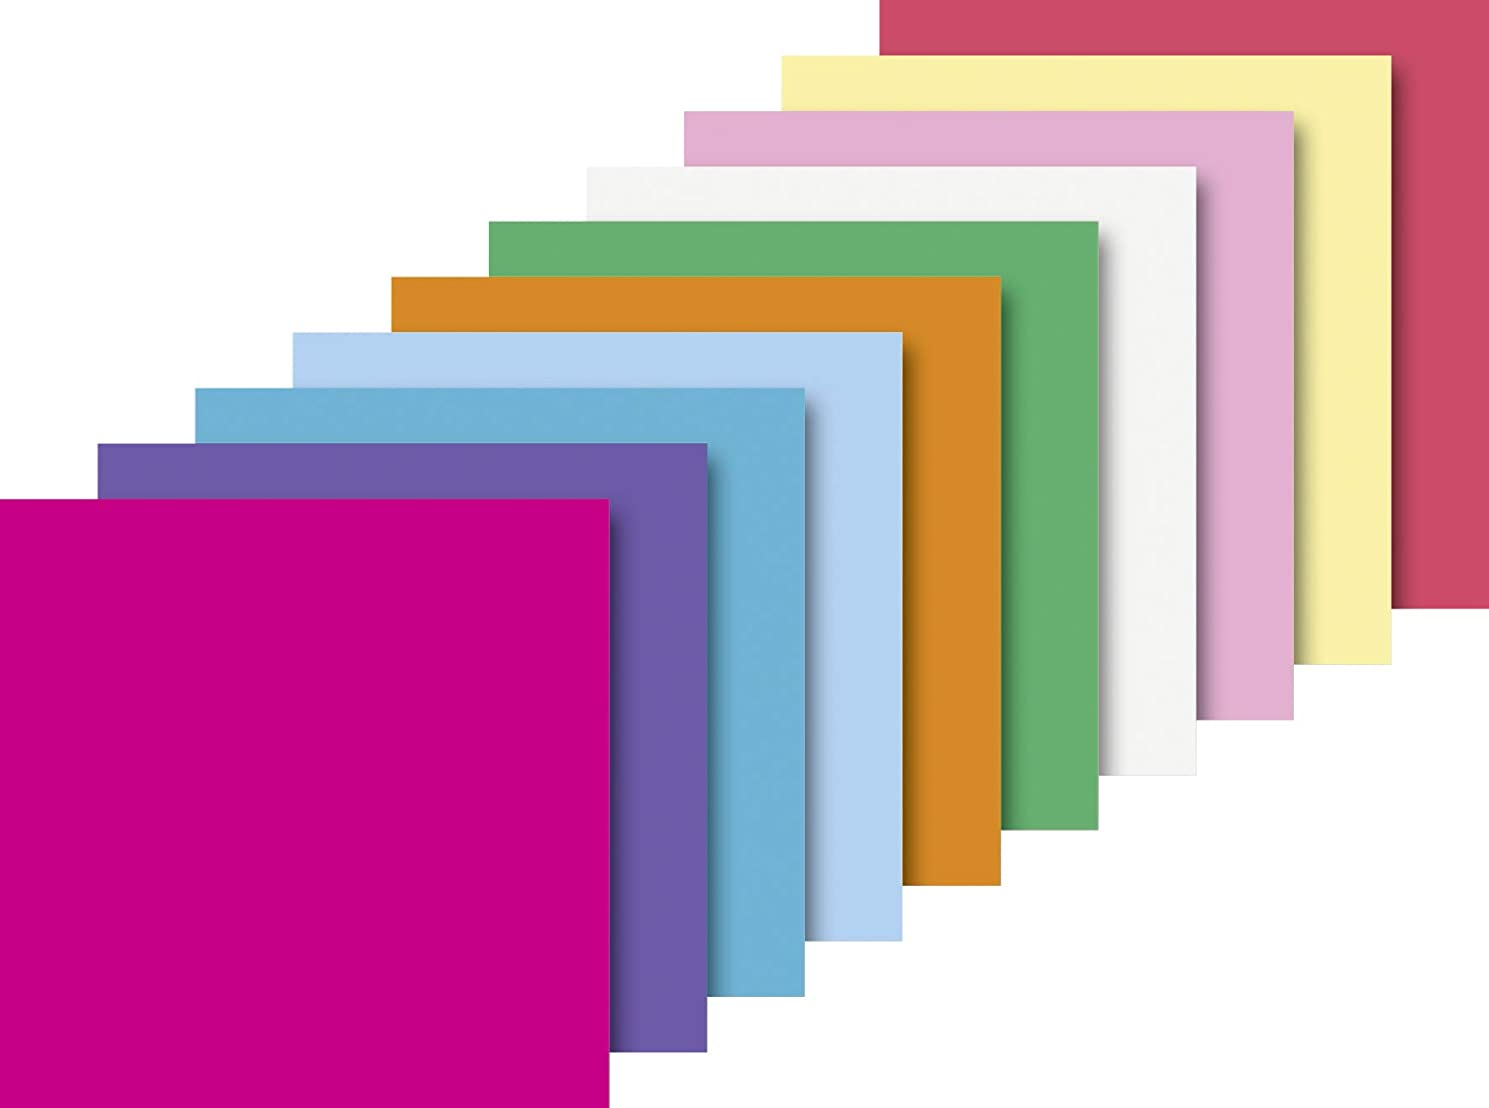 Heyda 204875520 Origami Paper 20 x 20 cm Assorted Colours 60 g/m2 Pack of 100 Sheets